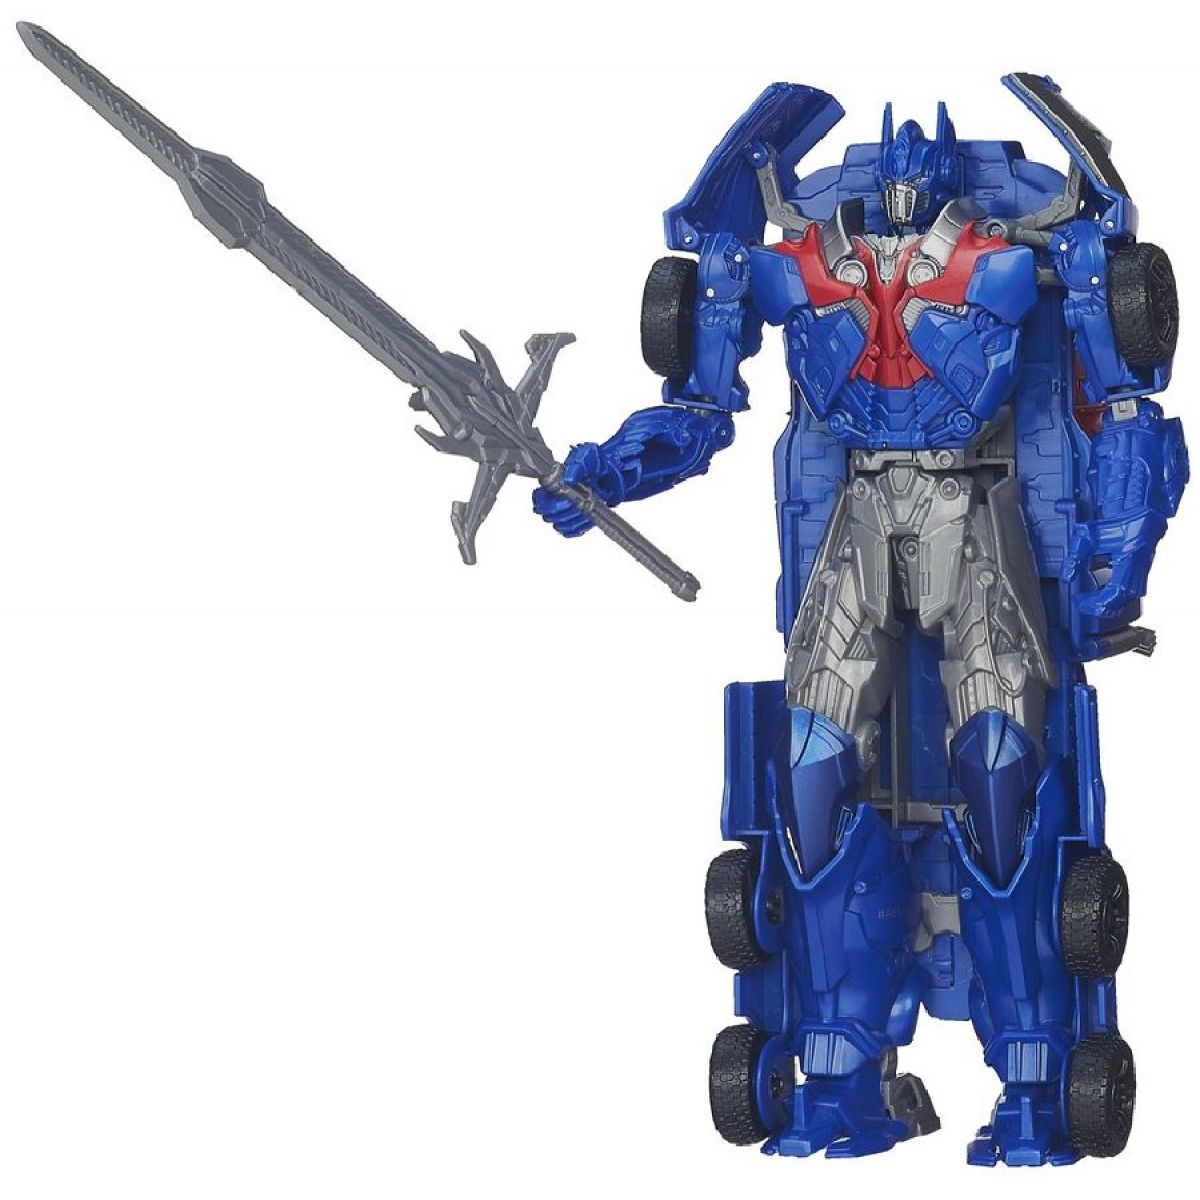 Transformers 4 Optimus Prime transformace otočením